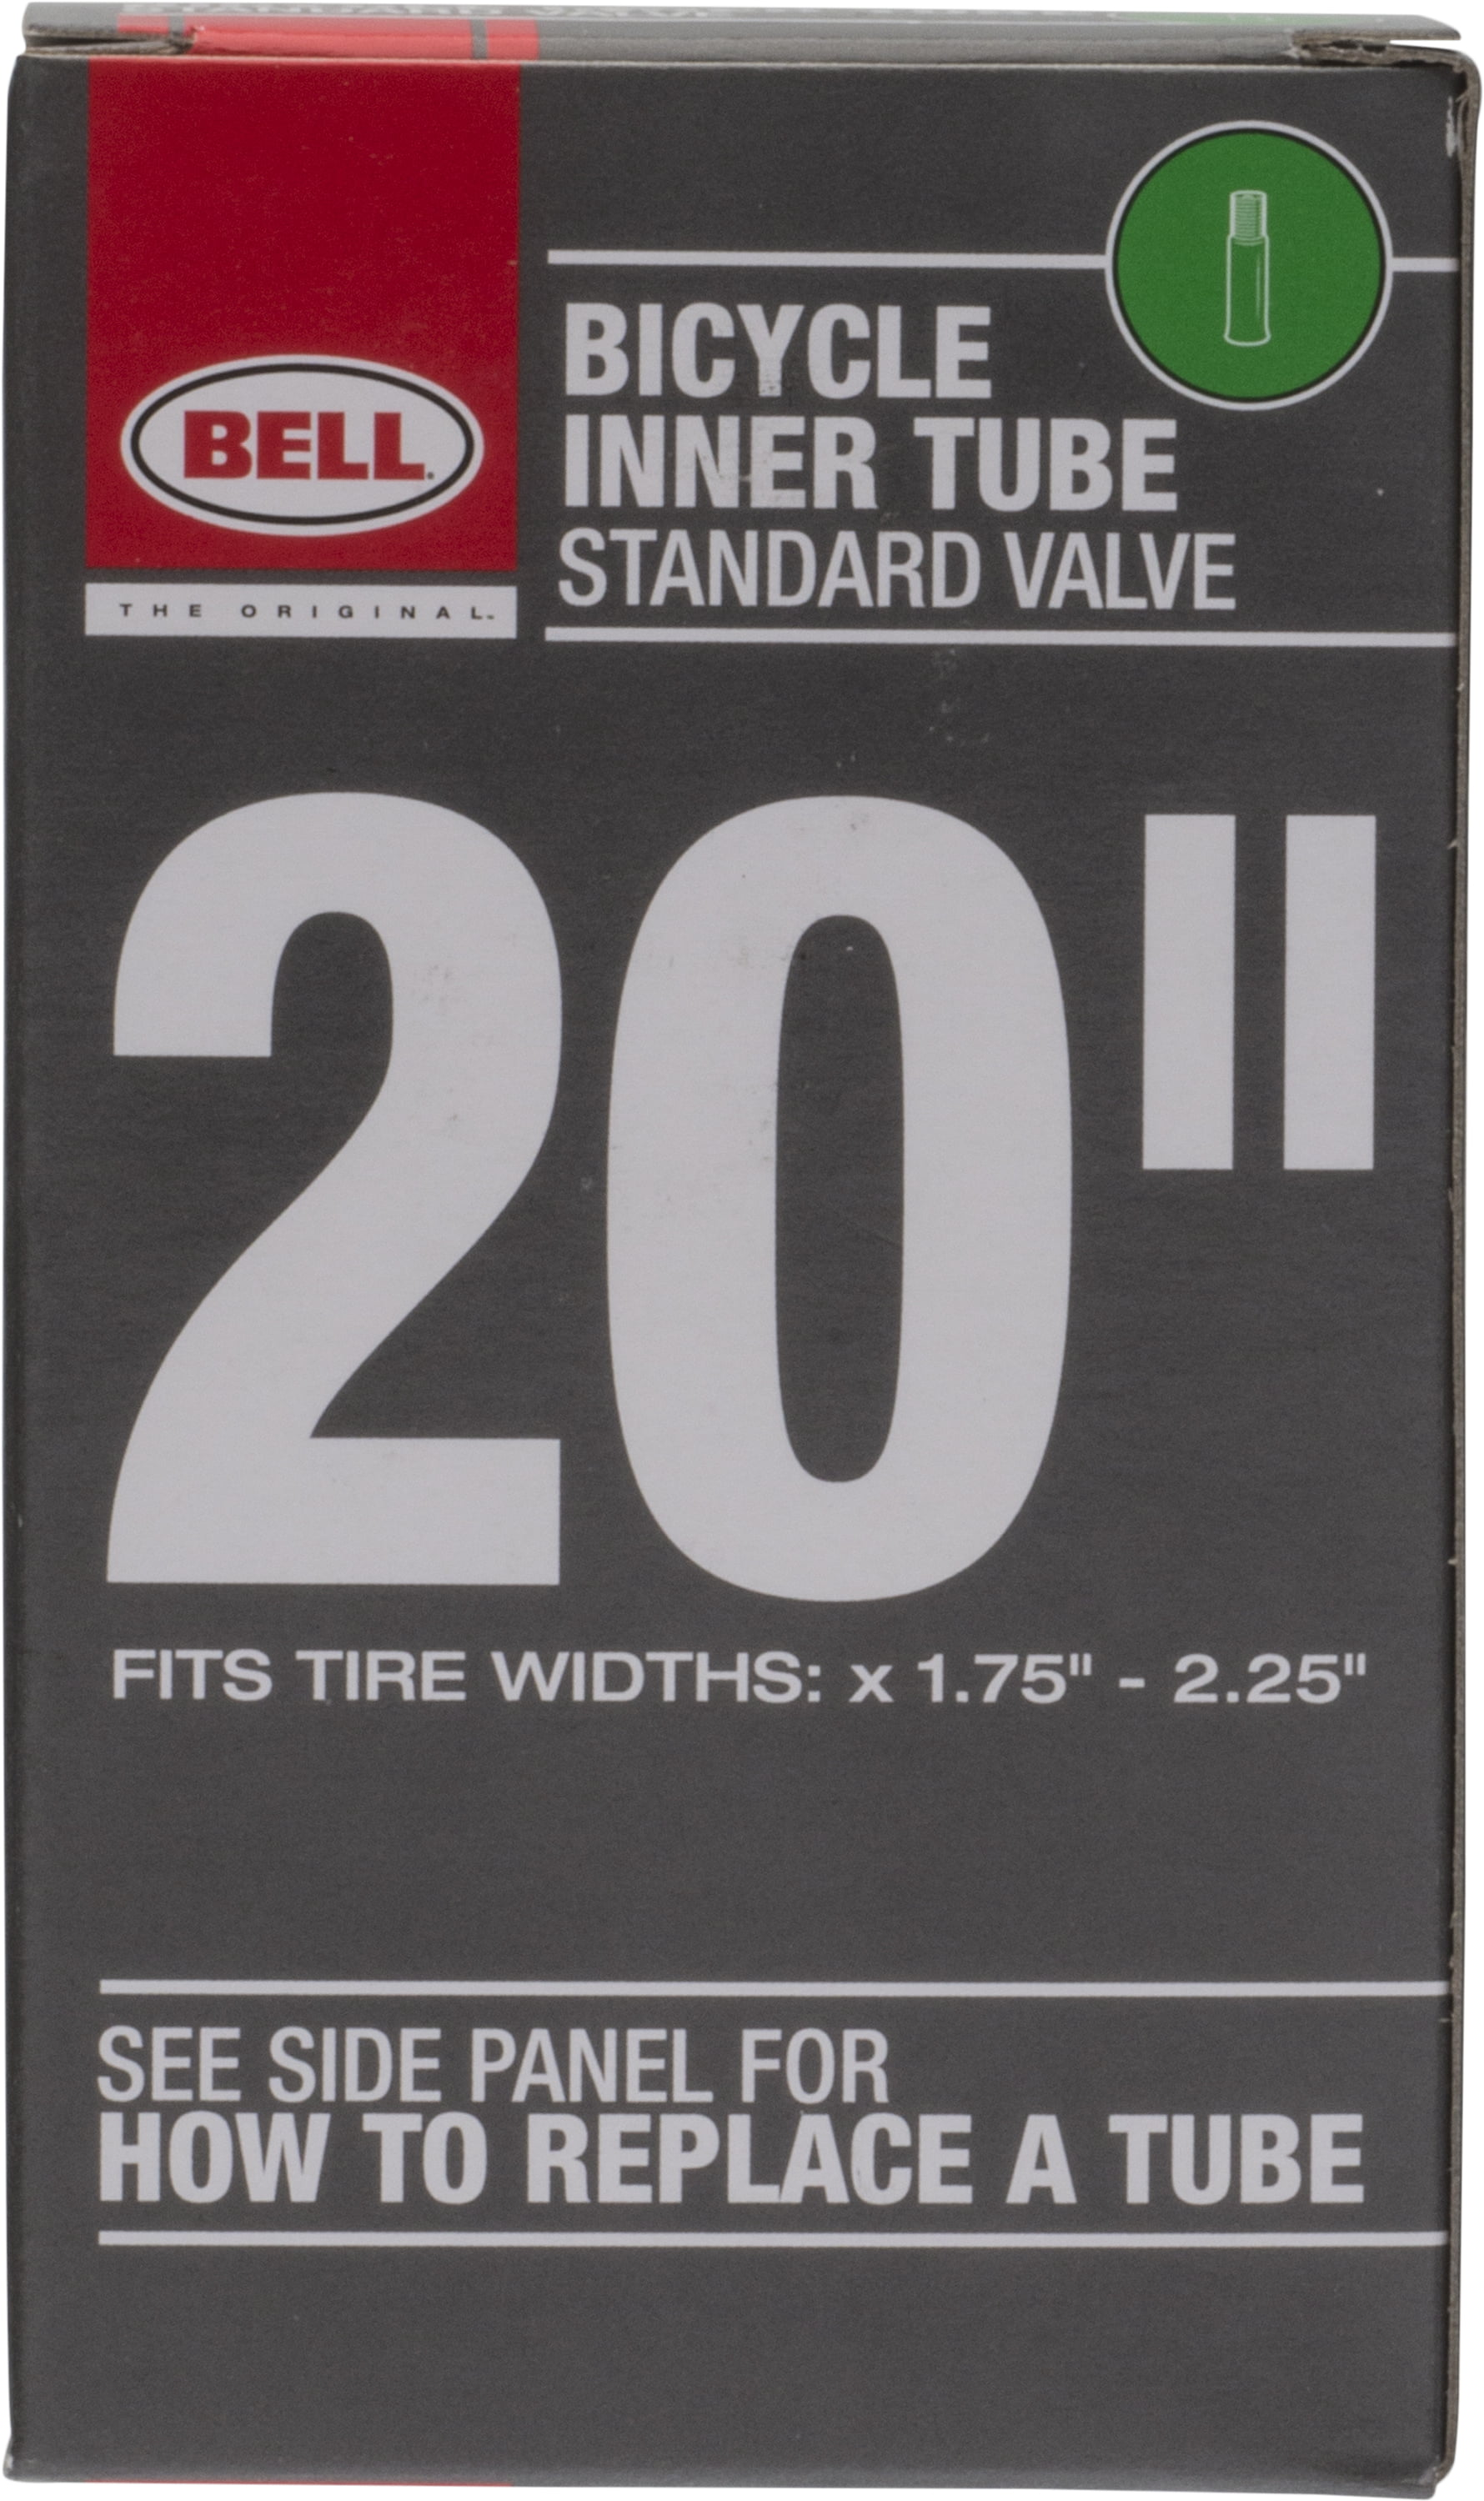 """Bell Bicycle Standard 26/"""" Schrader Valve Tube Fits Width 1.75-2.25-2 Boxes"""